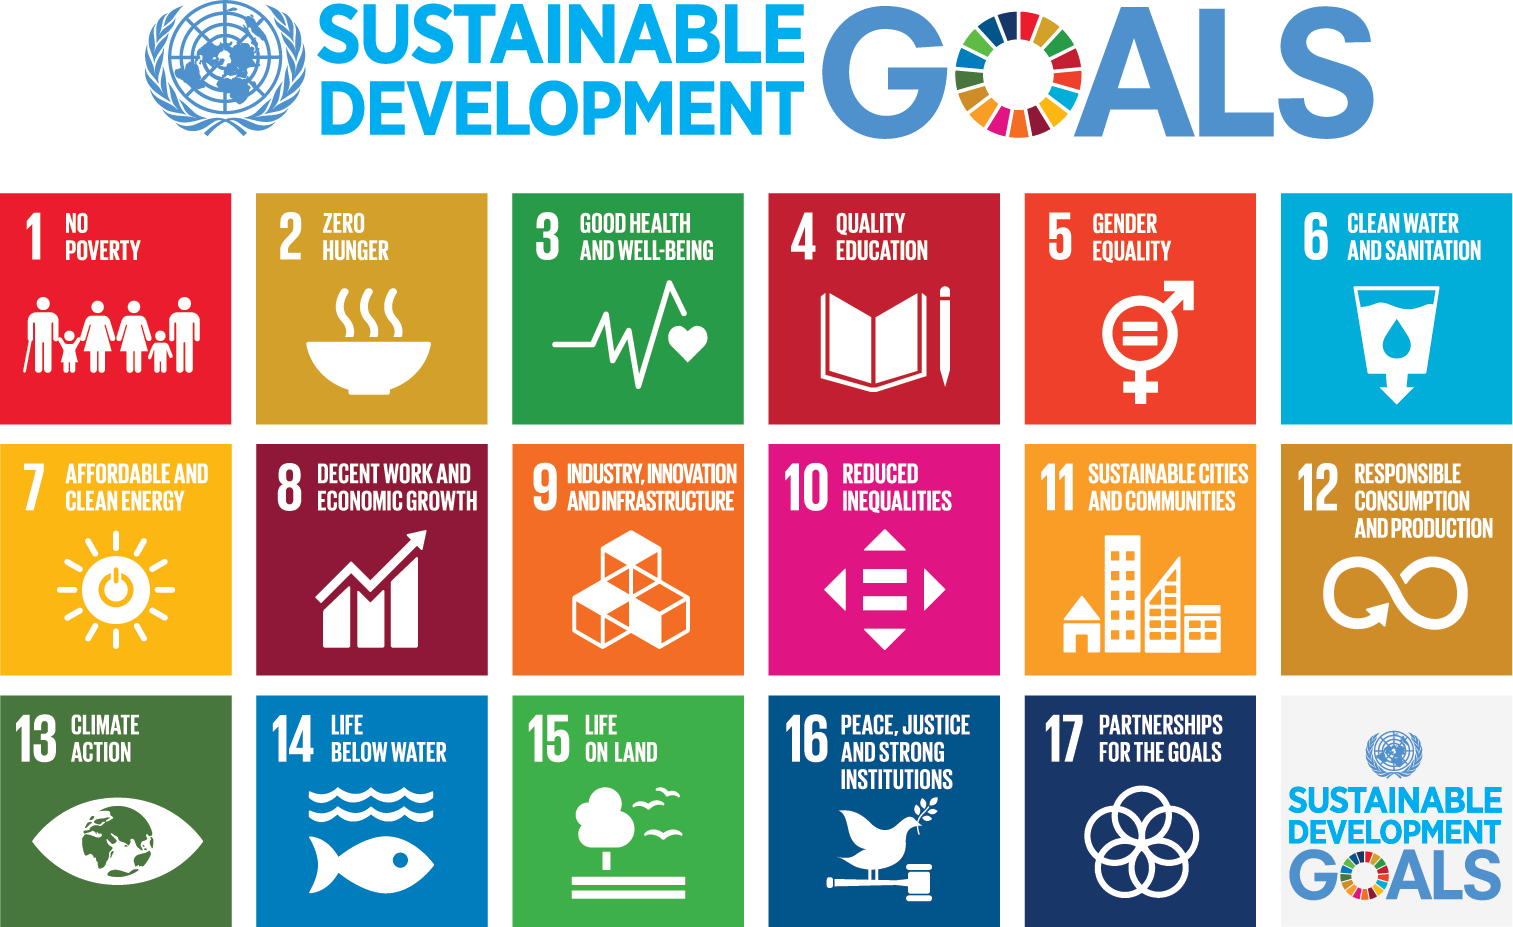 Diagram showing Sustainable Development Goals